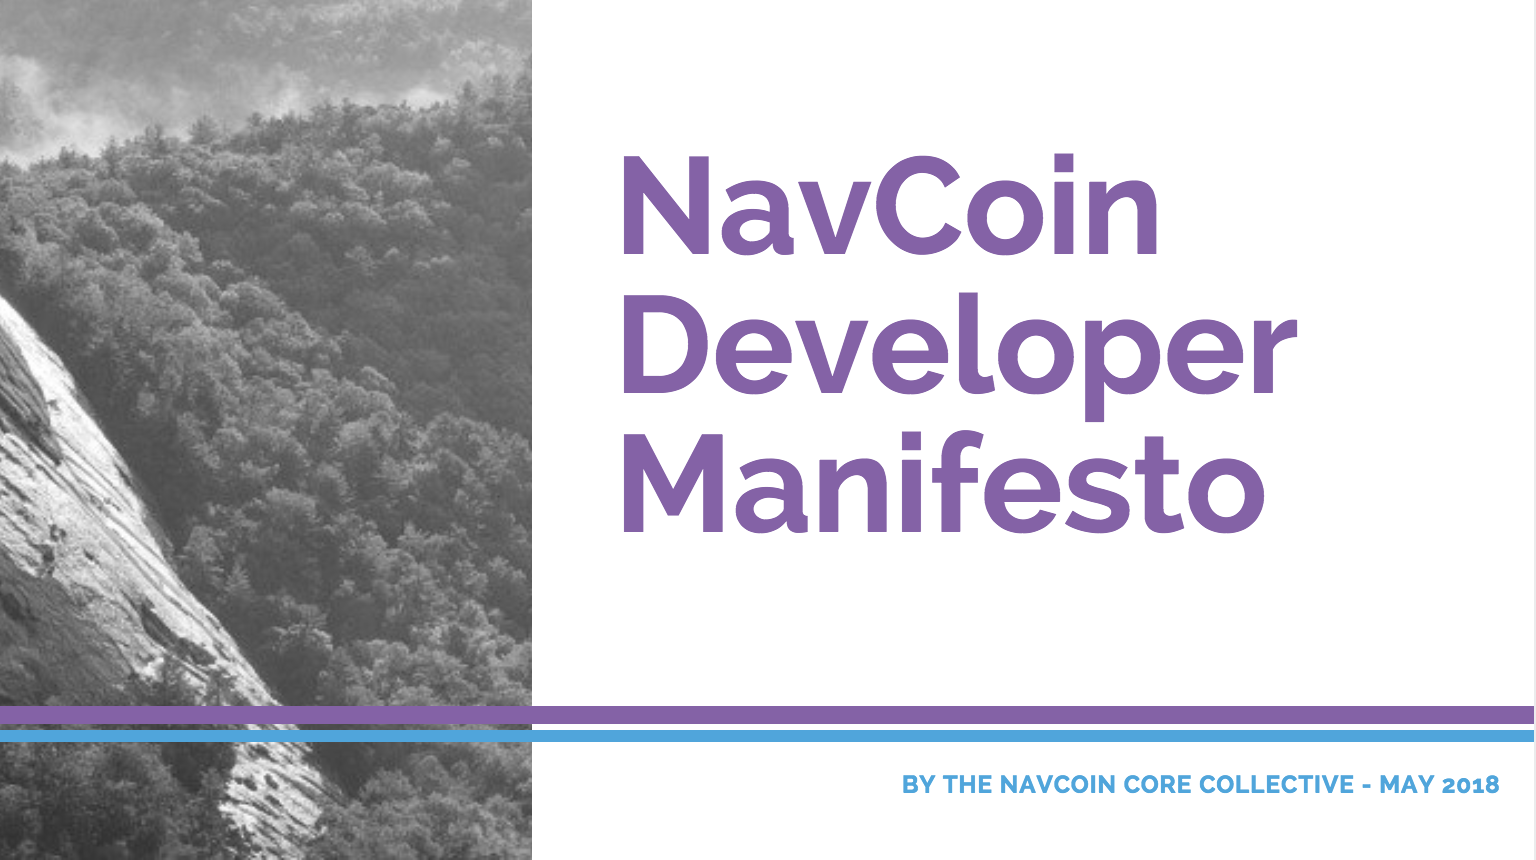 NavCoin Developer Manifesto